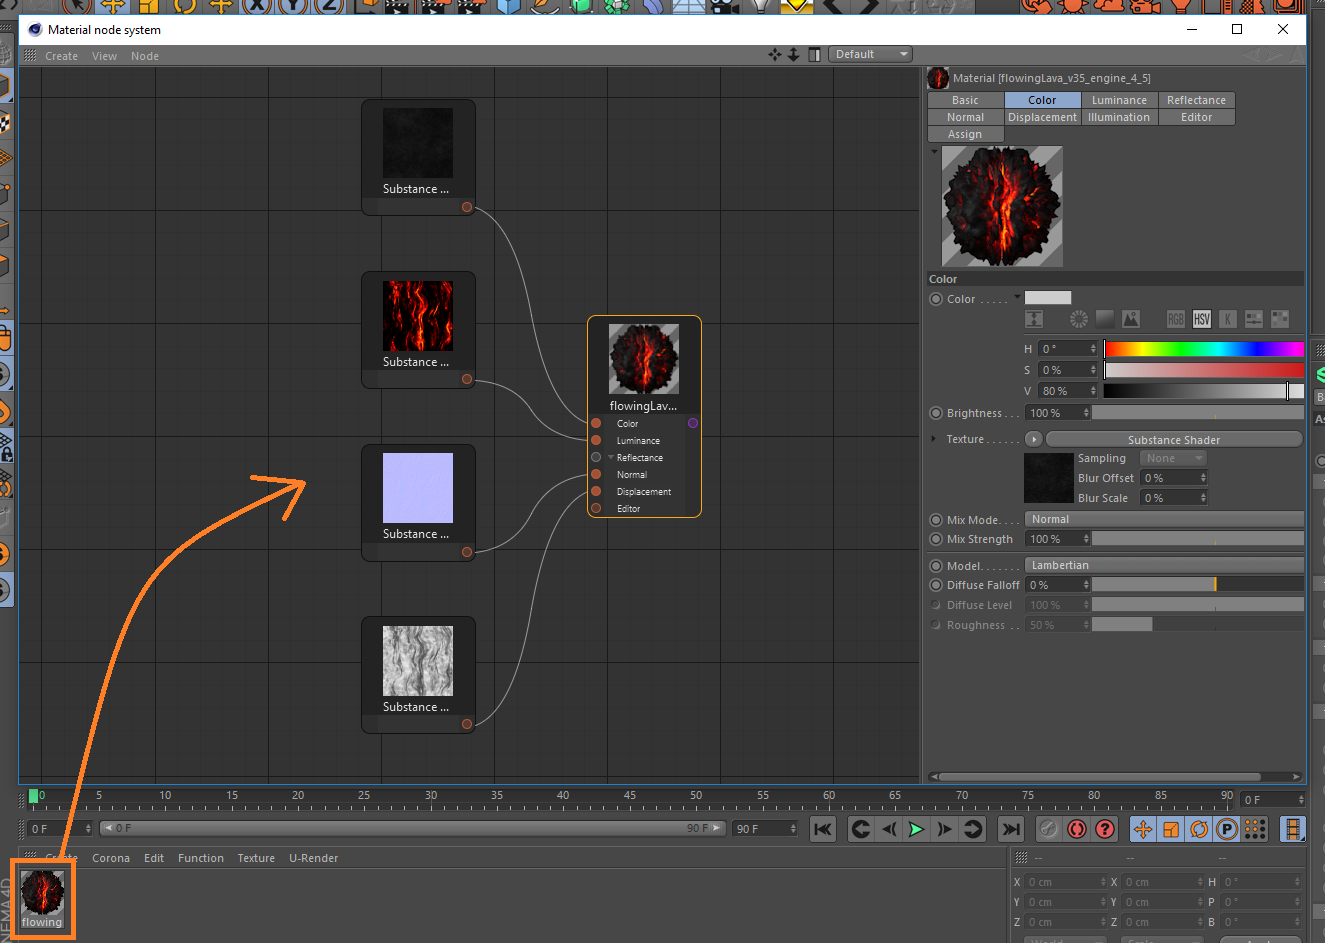 How to import Substance assets into Cinema 4D : Corona